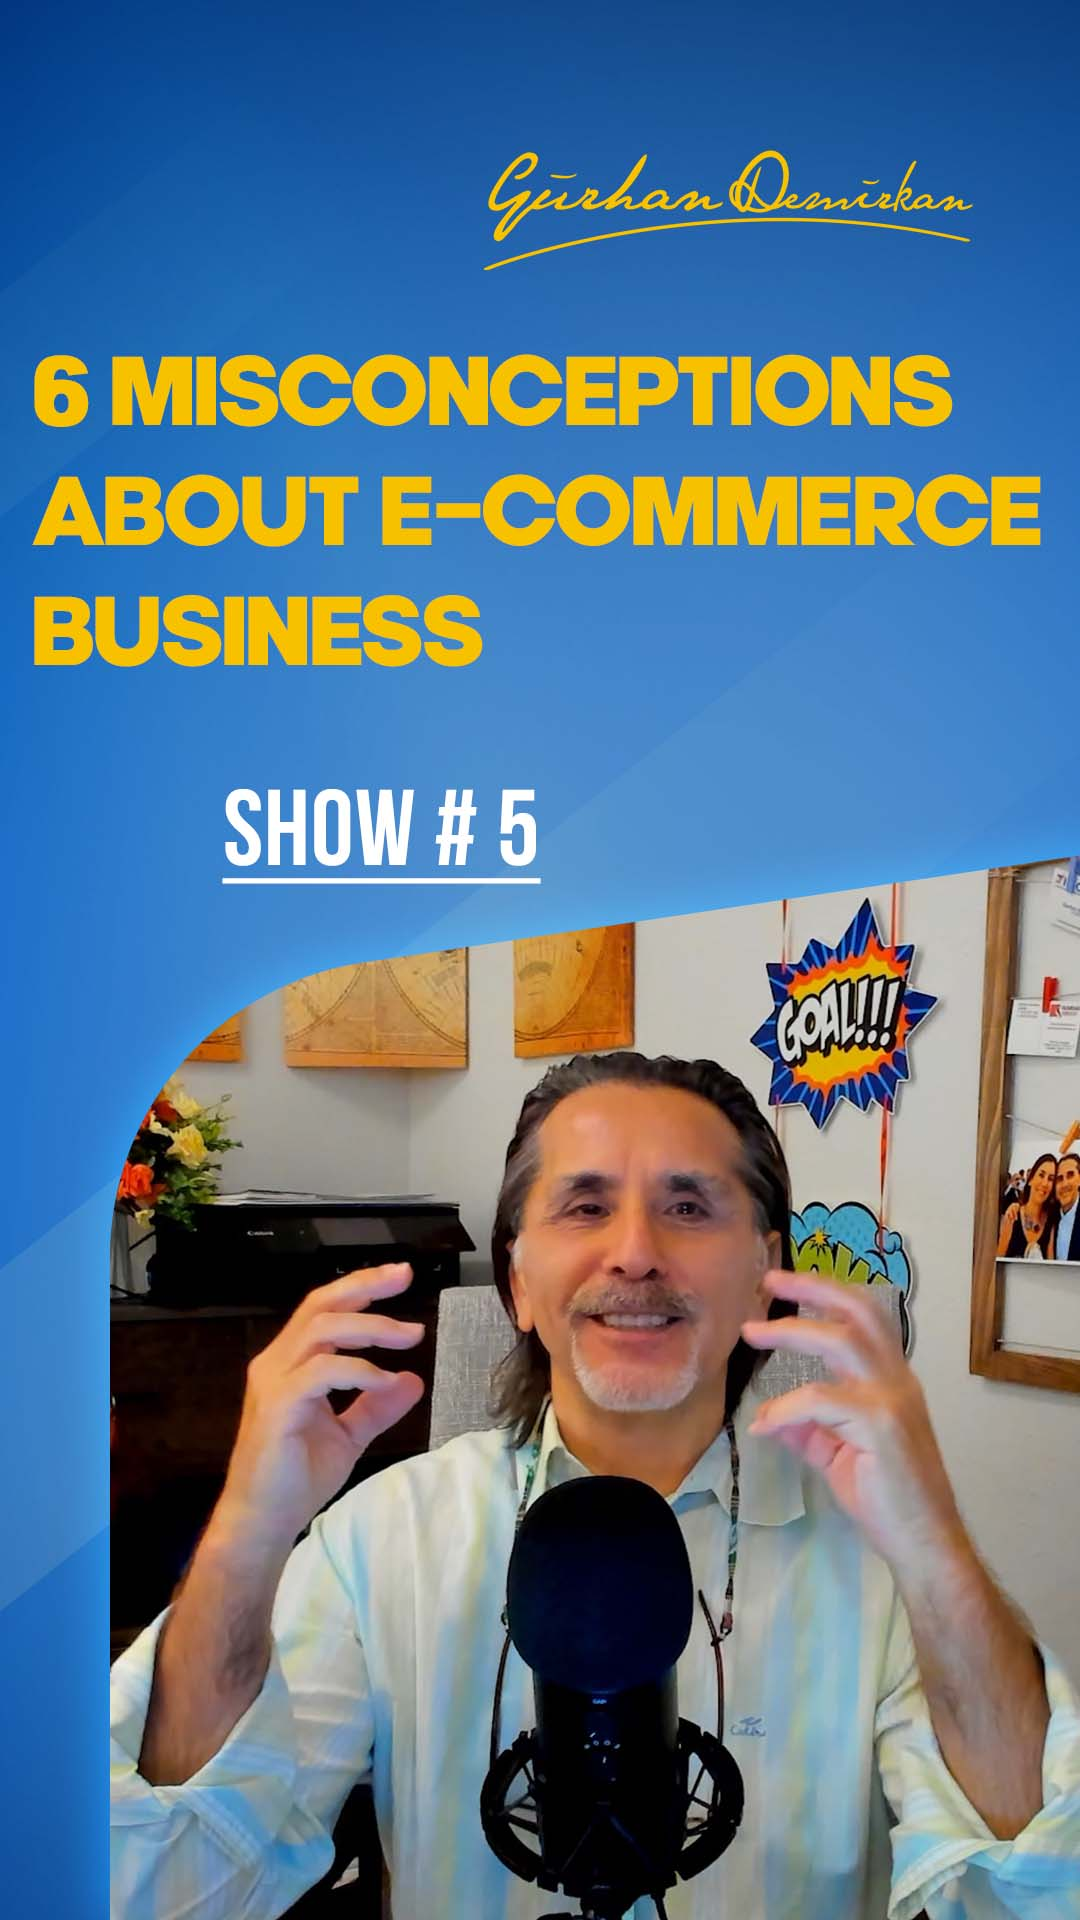 6 Misconceptions About e-Commerce Business